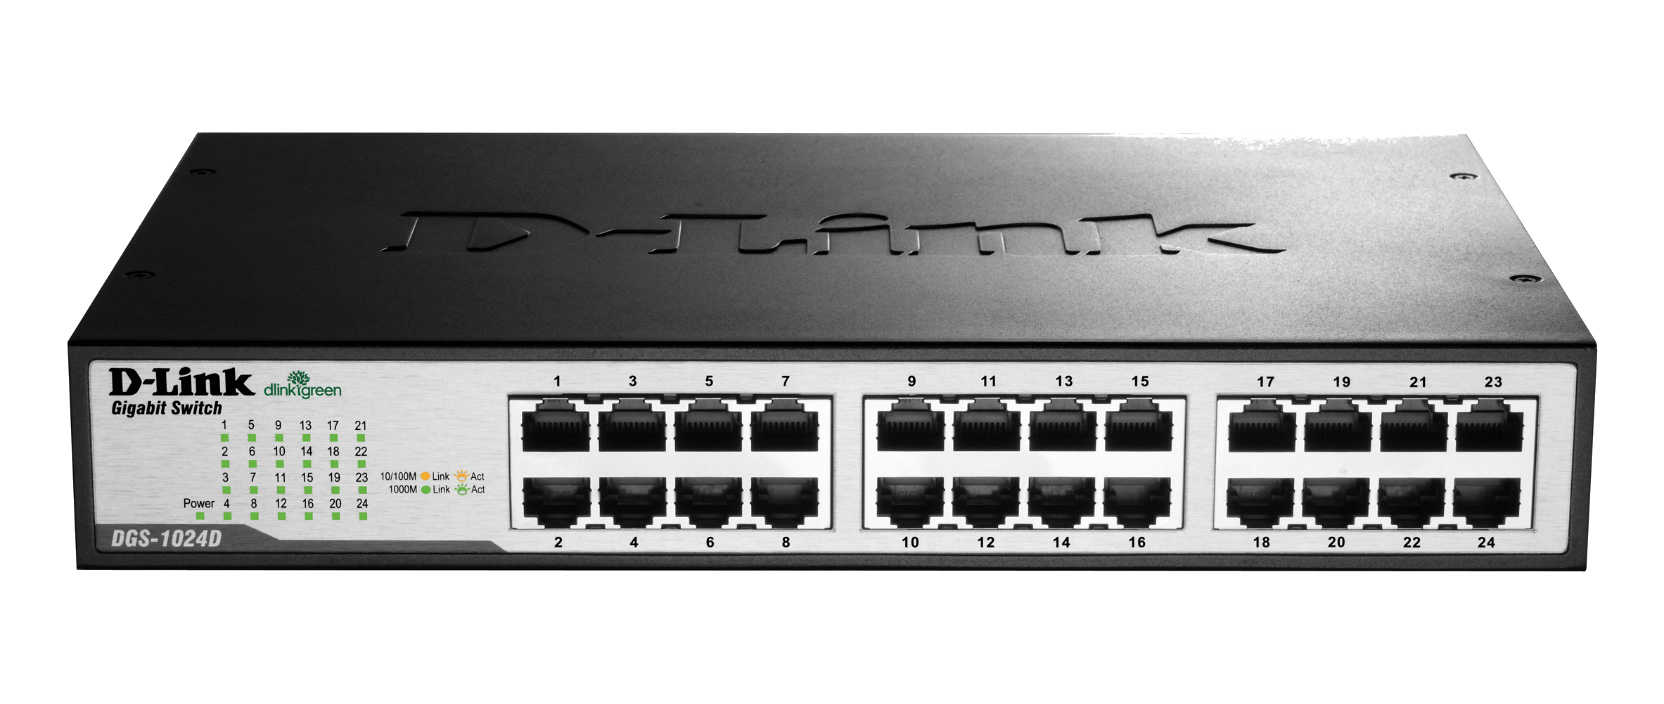 D-Link DGS-1024D Unmanaged - Switches - Network Products - 2BY2